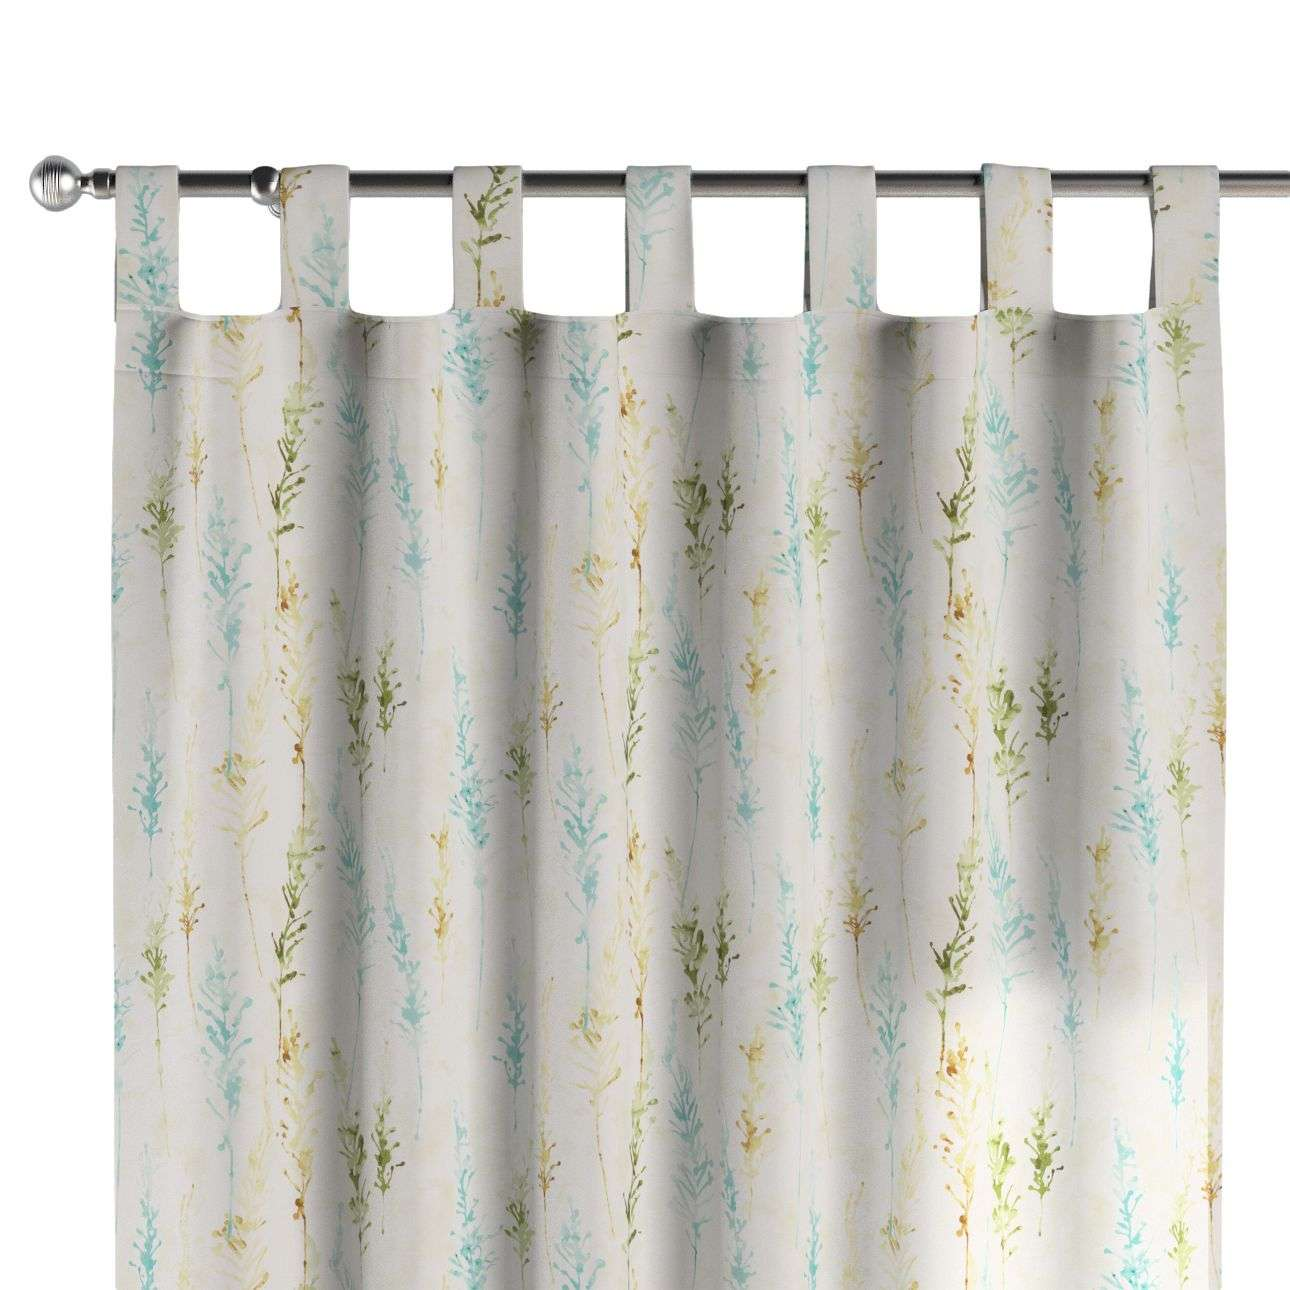 Tab top curtains in collection Acapulco, fabric: 141-38